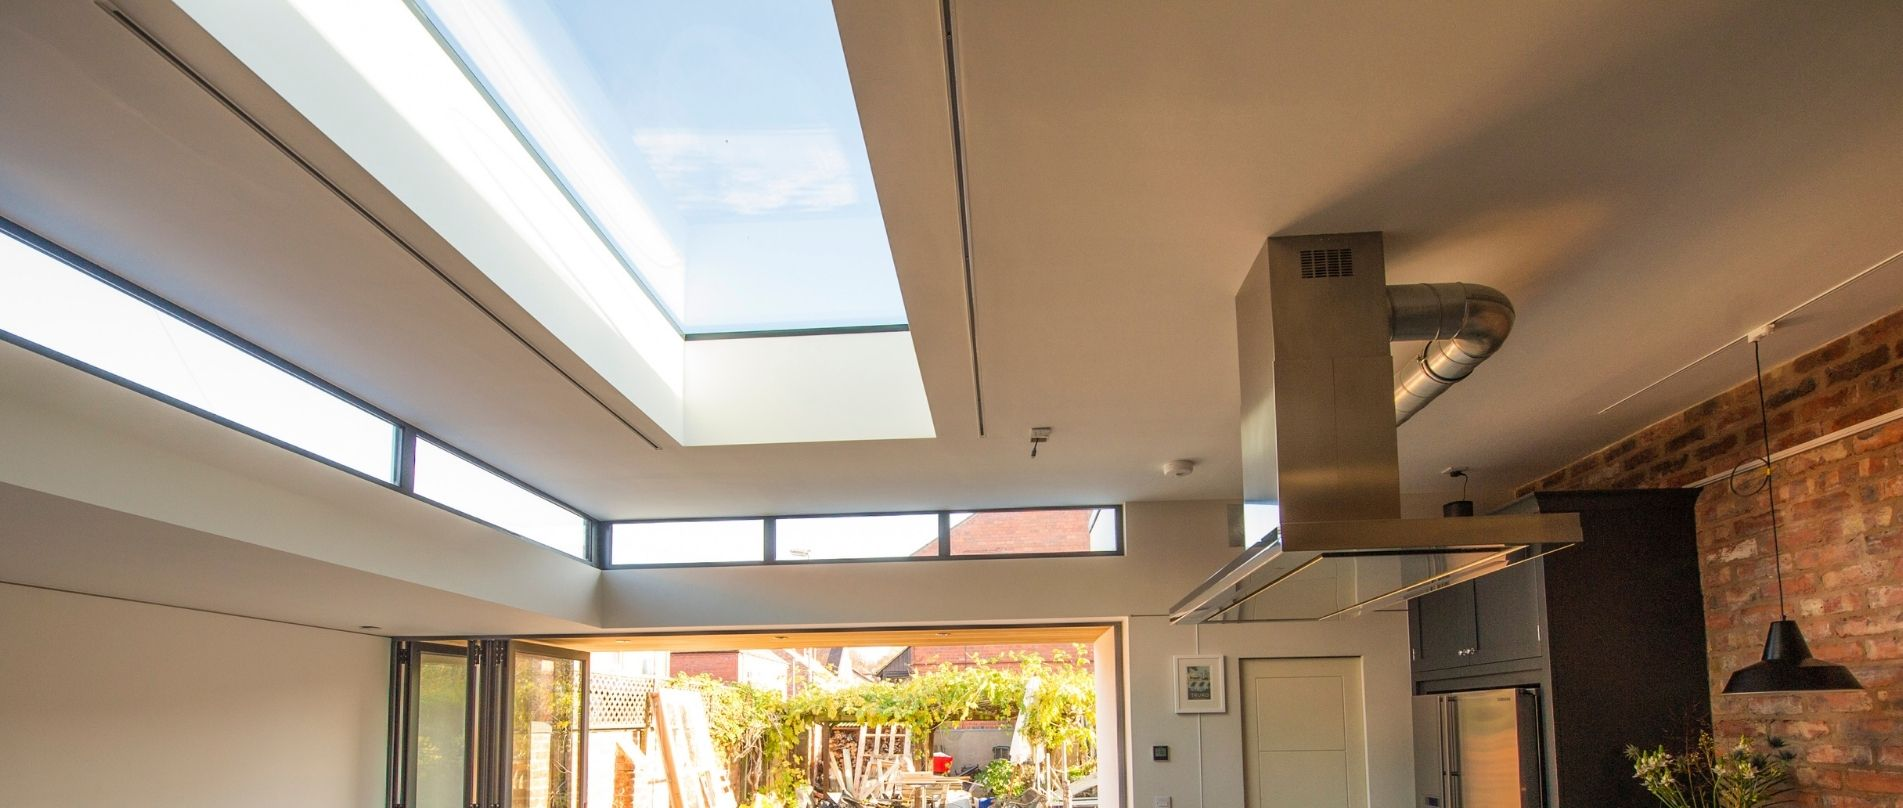 modern kitchen extension with a flat fixed aluminium rooflight and aluminium bifolding doors for maximum natural light